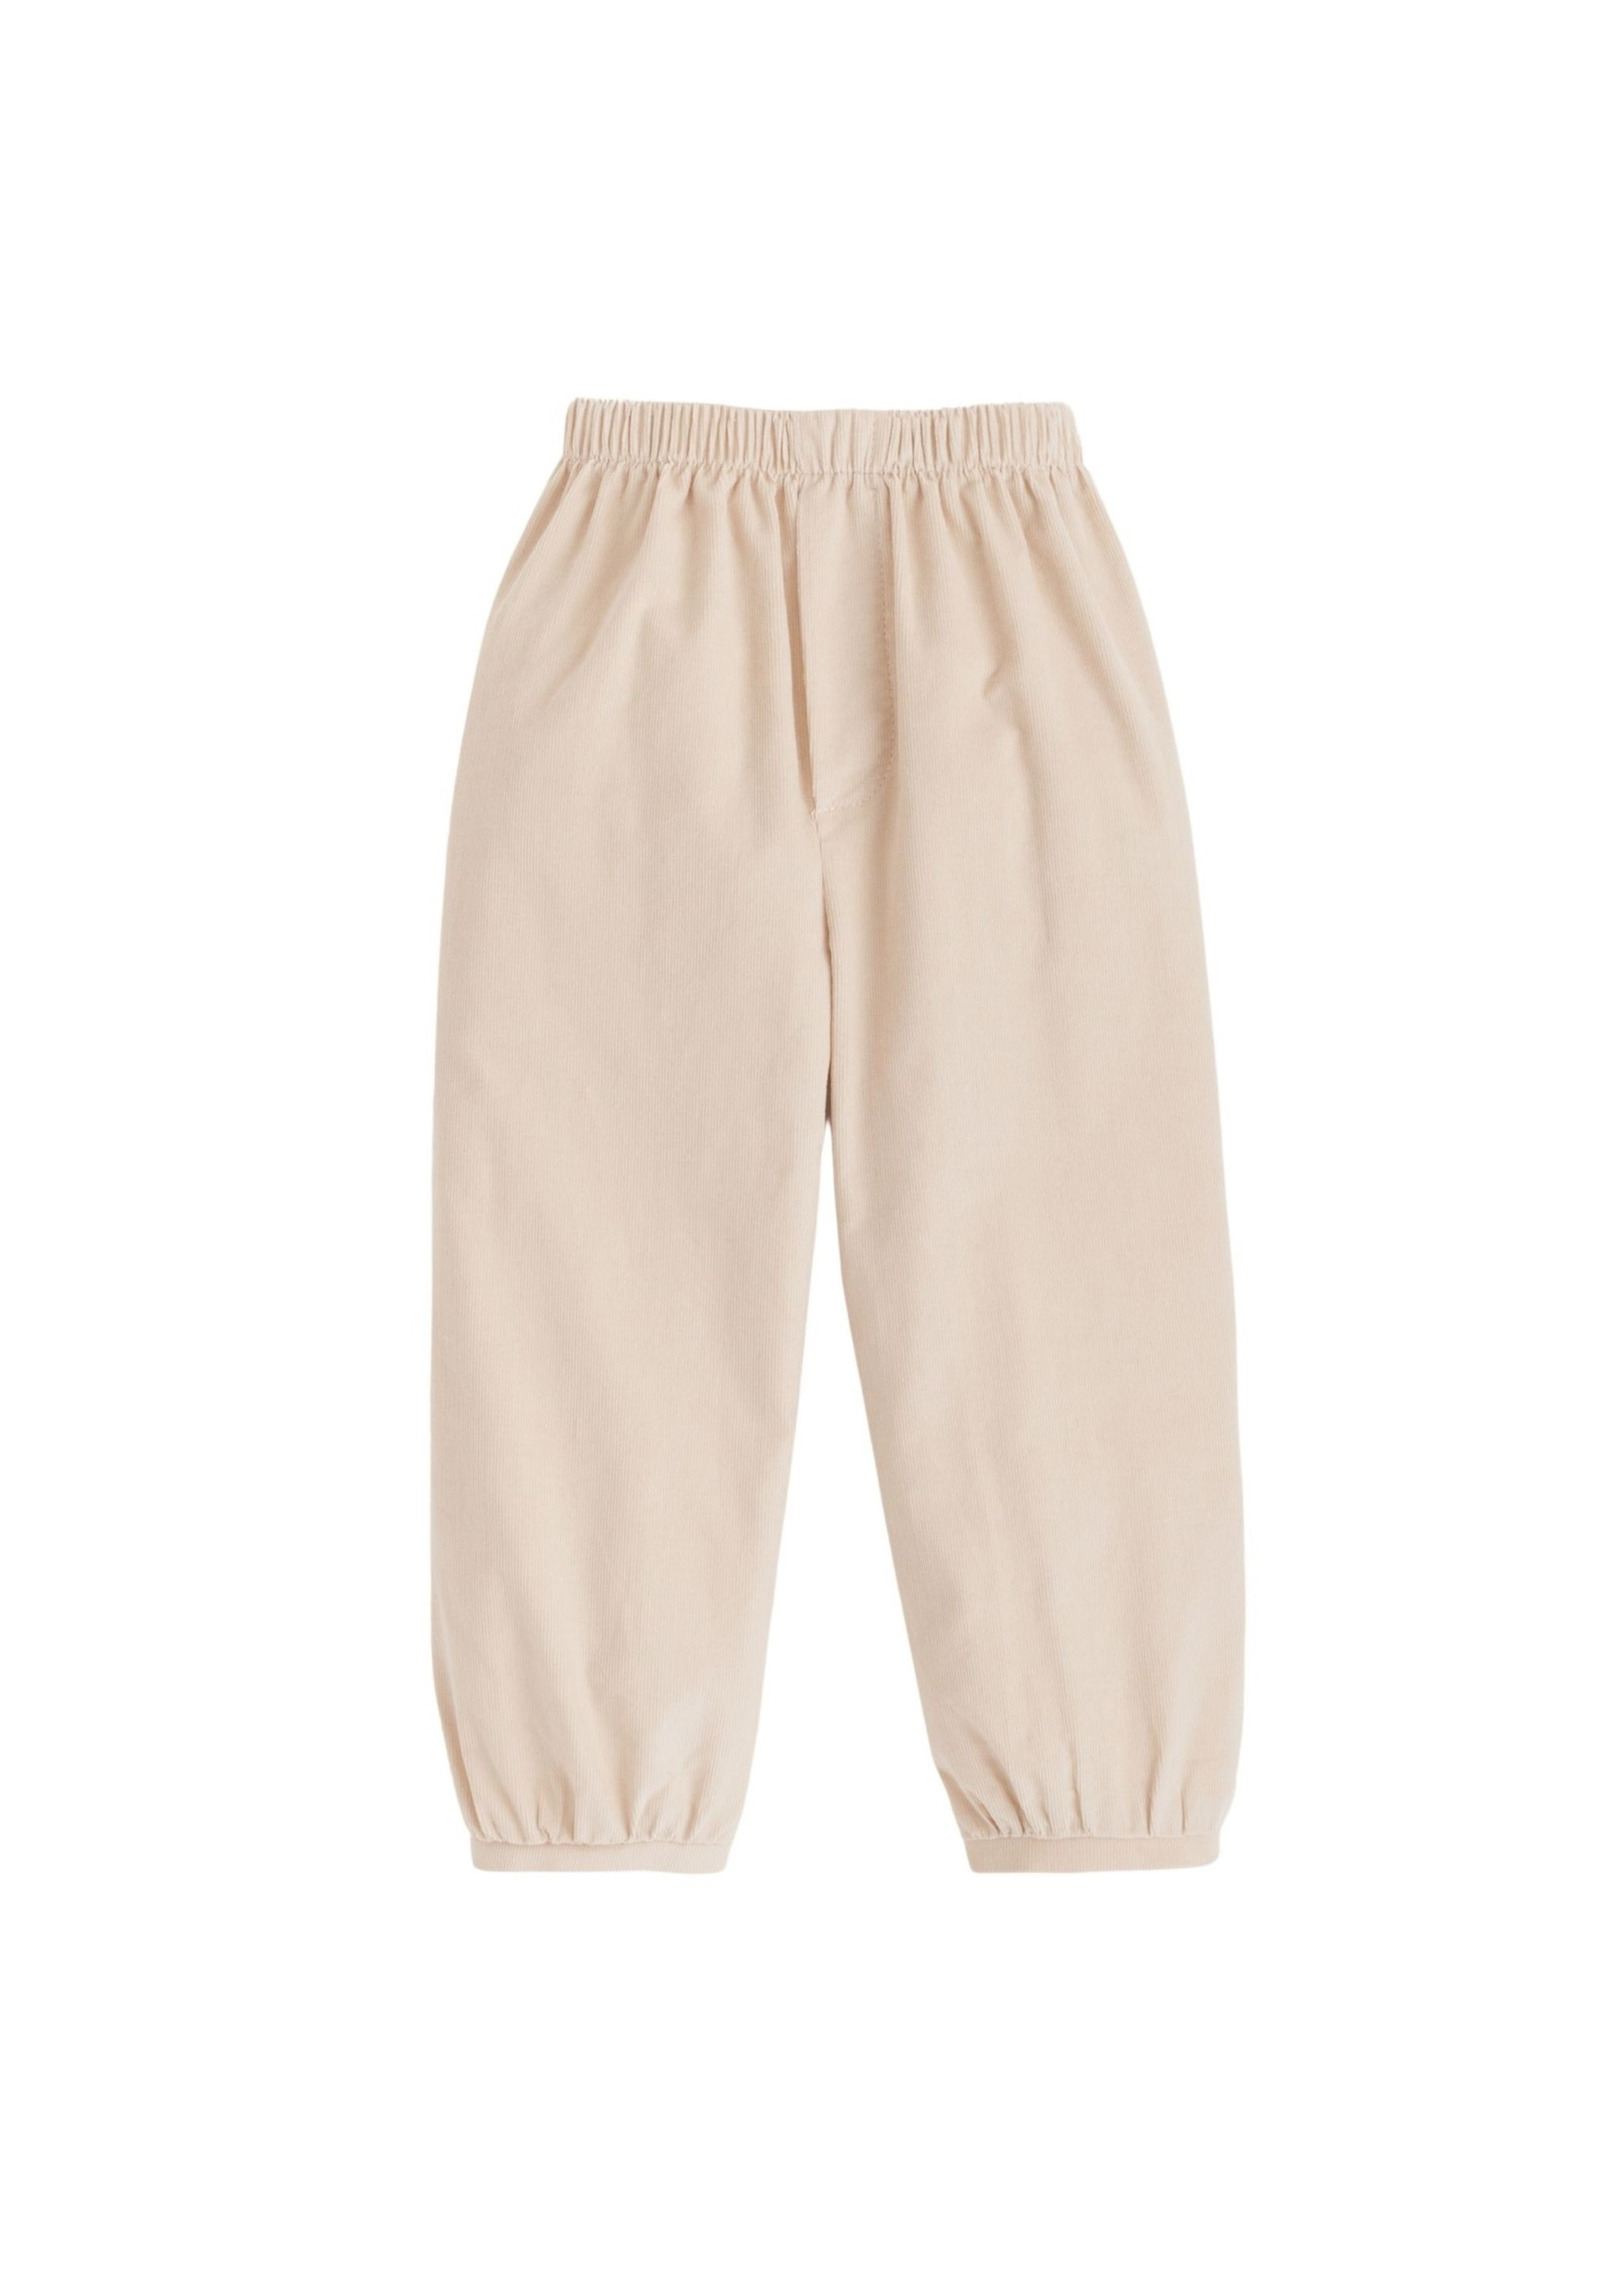 Little English Banded Pull on Pant - Tan